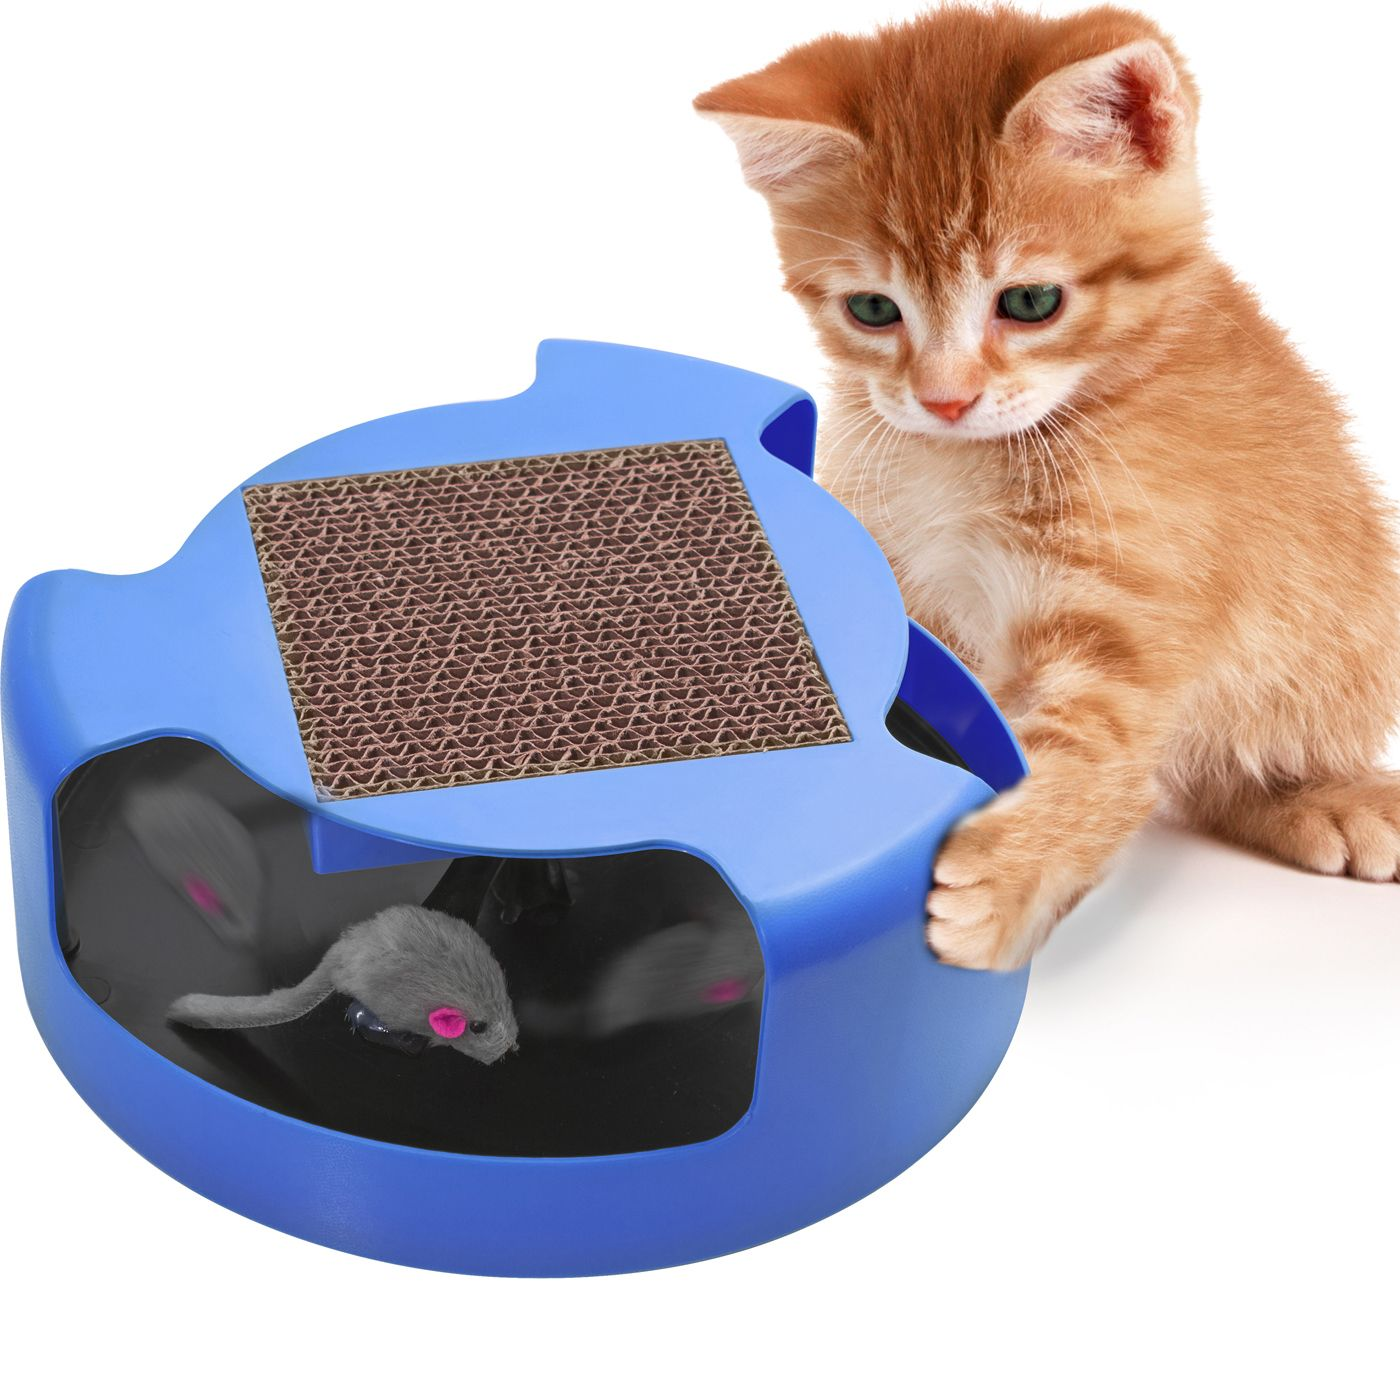 Cat Mouse Play Toy with Scratching Post by Oxgord